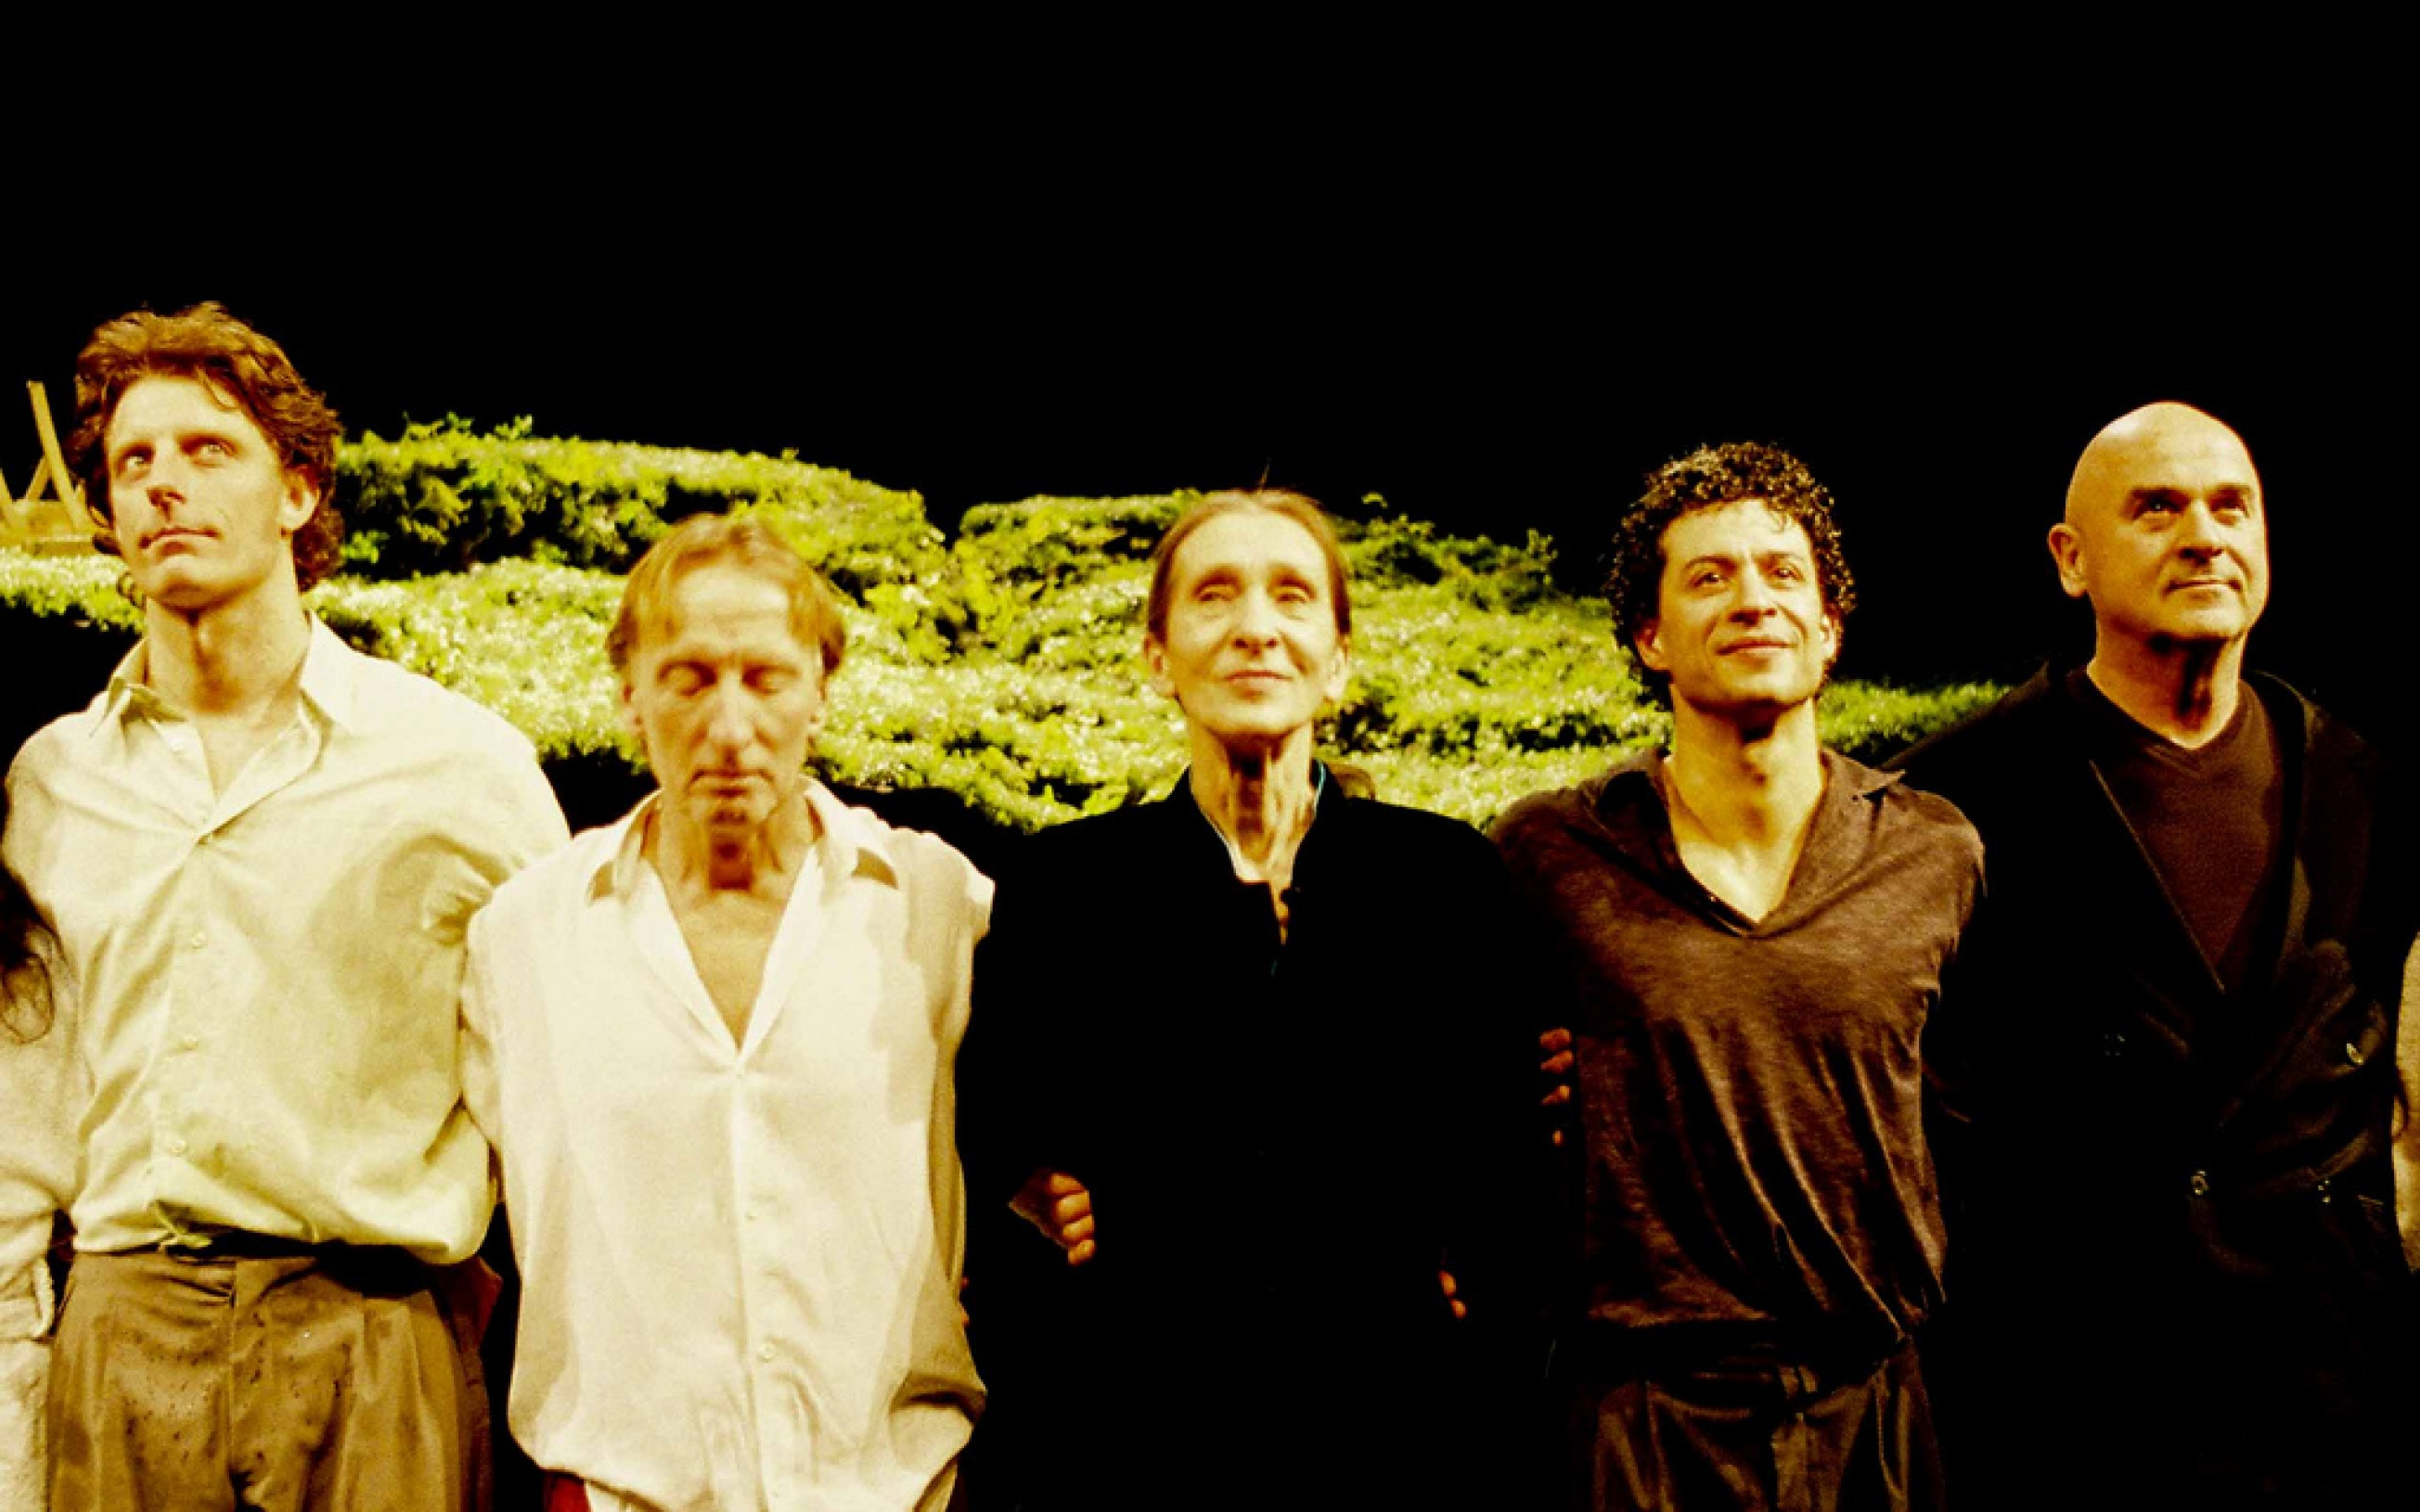 Pina bausch with her dancers at the Wiesenland show